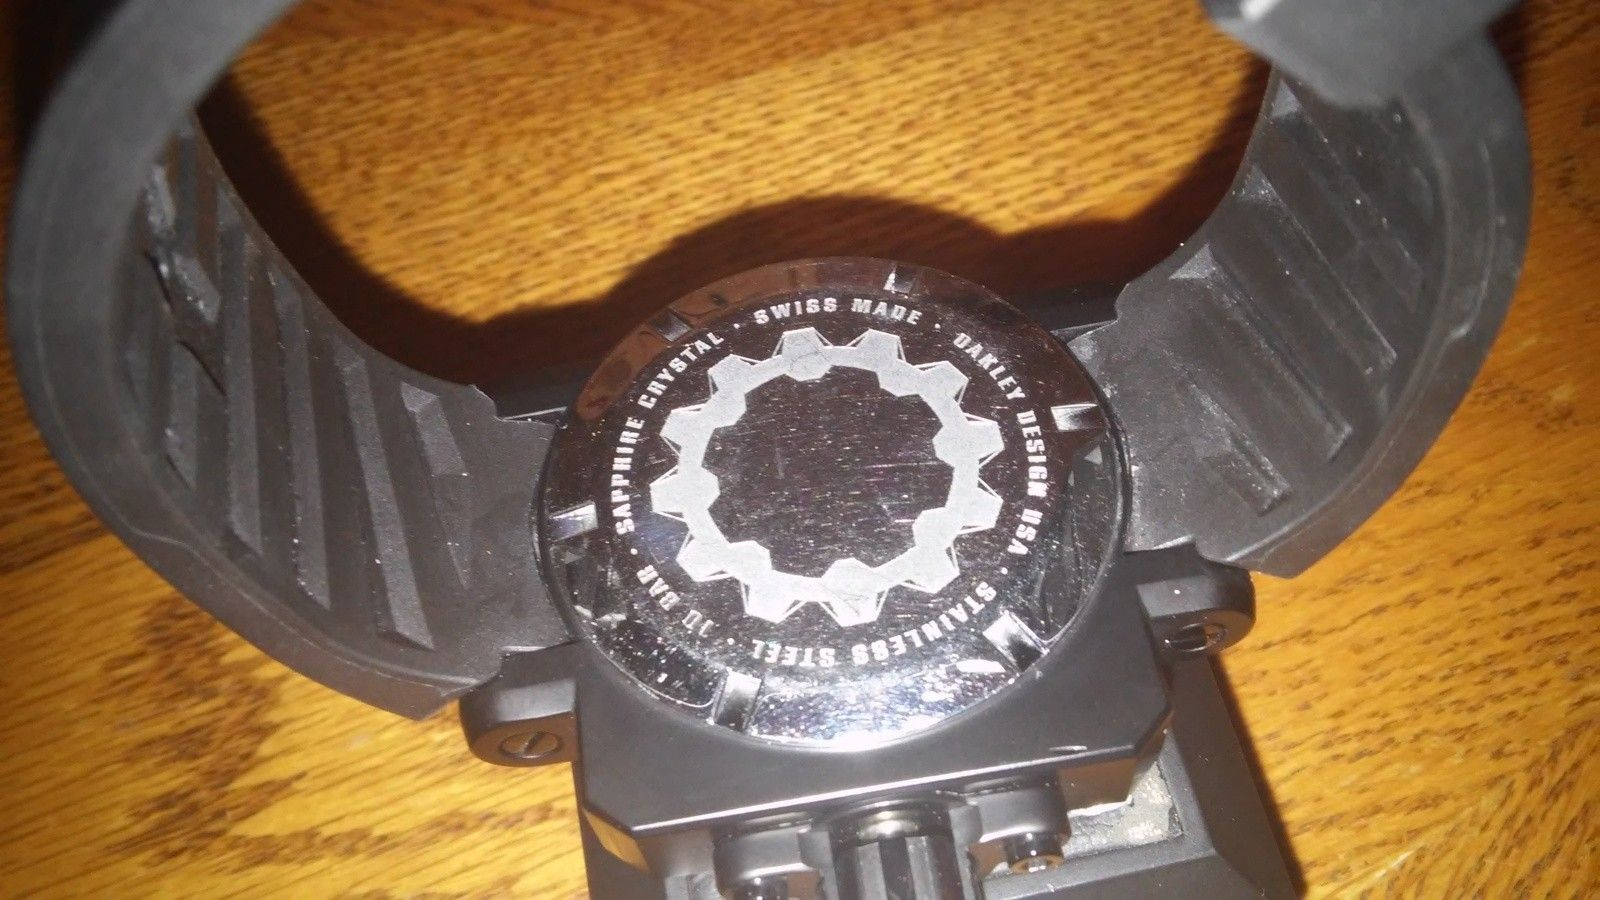 Brazil gearbox watch - 20150618_073951.jpg